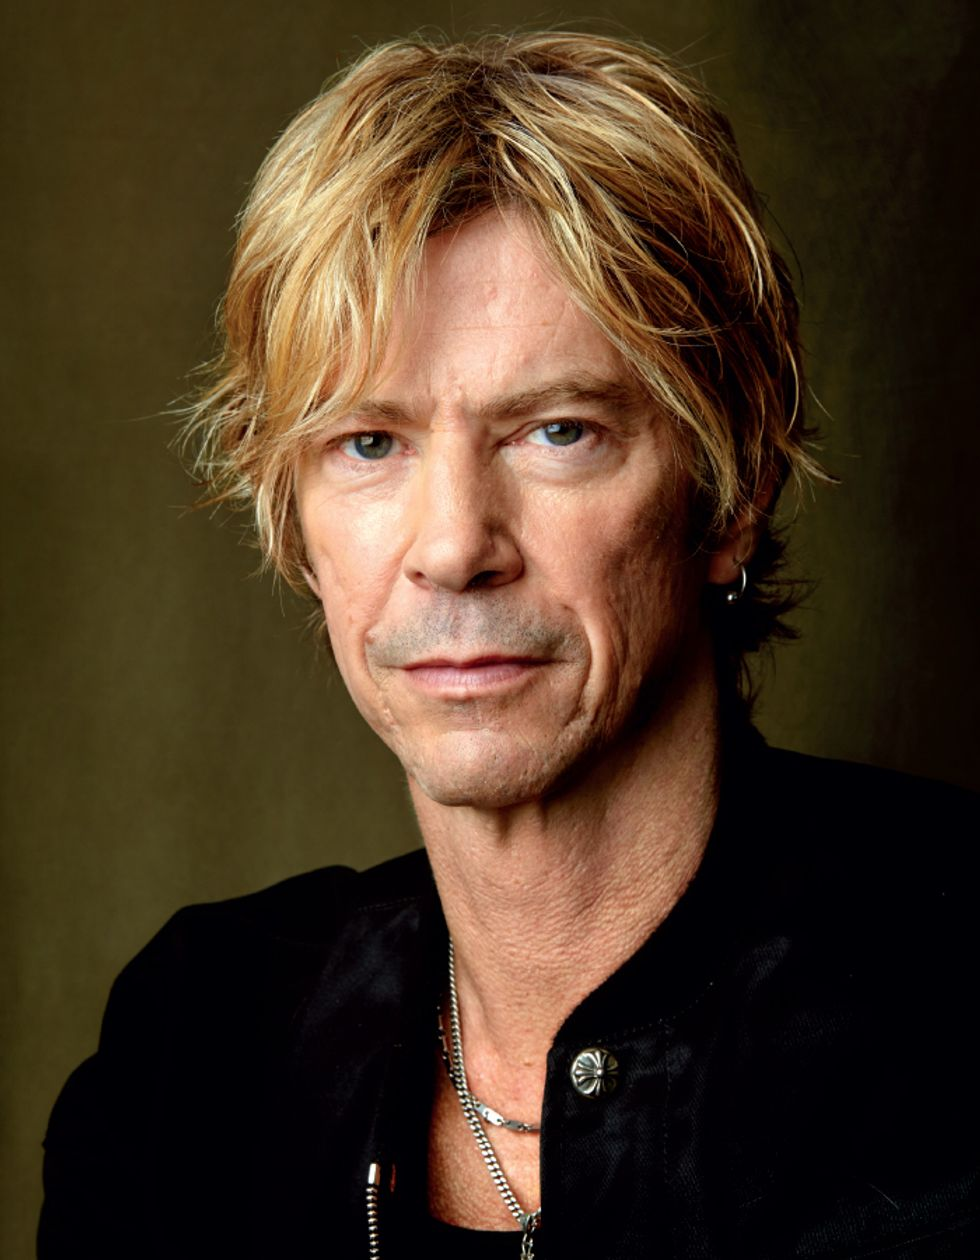 Use Your Voice: Duff McKagan